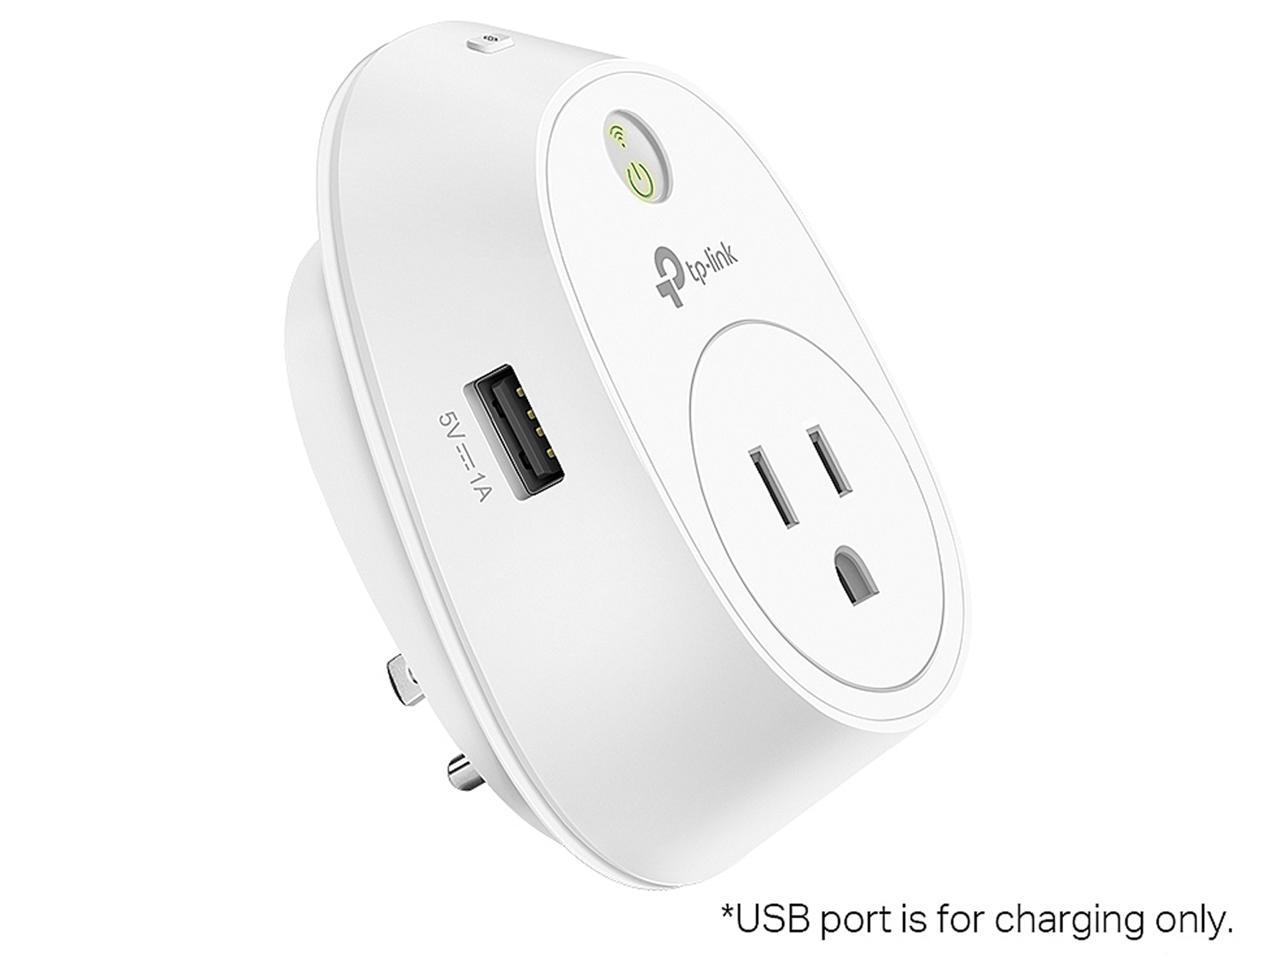 TP-LINK HS110 V2 Smart Plug with USB Charging Port, Wi-Fi En